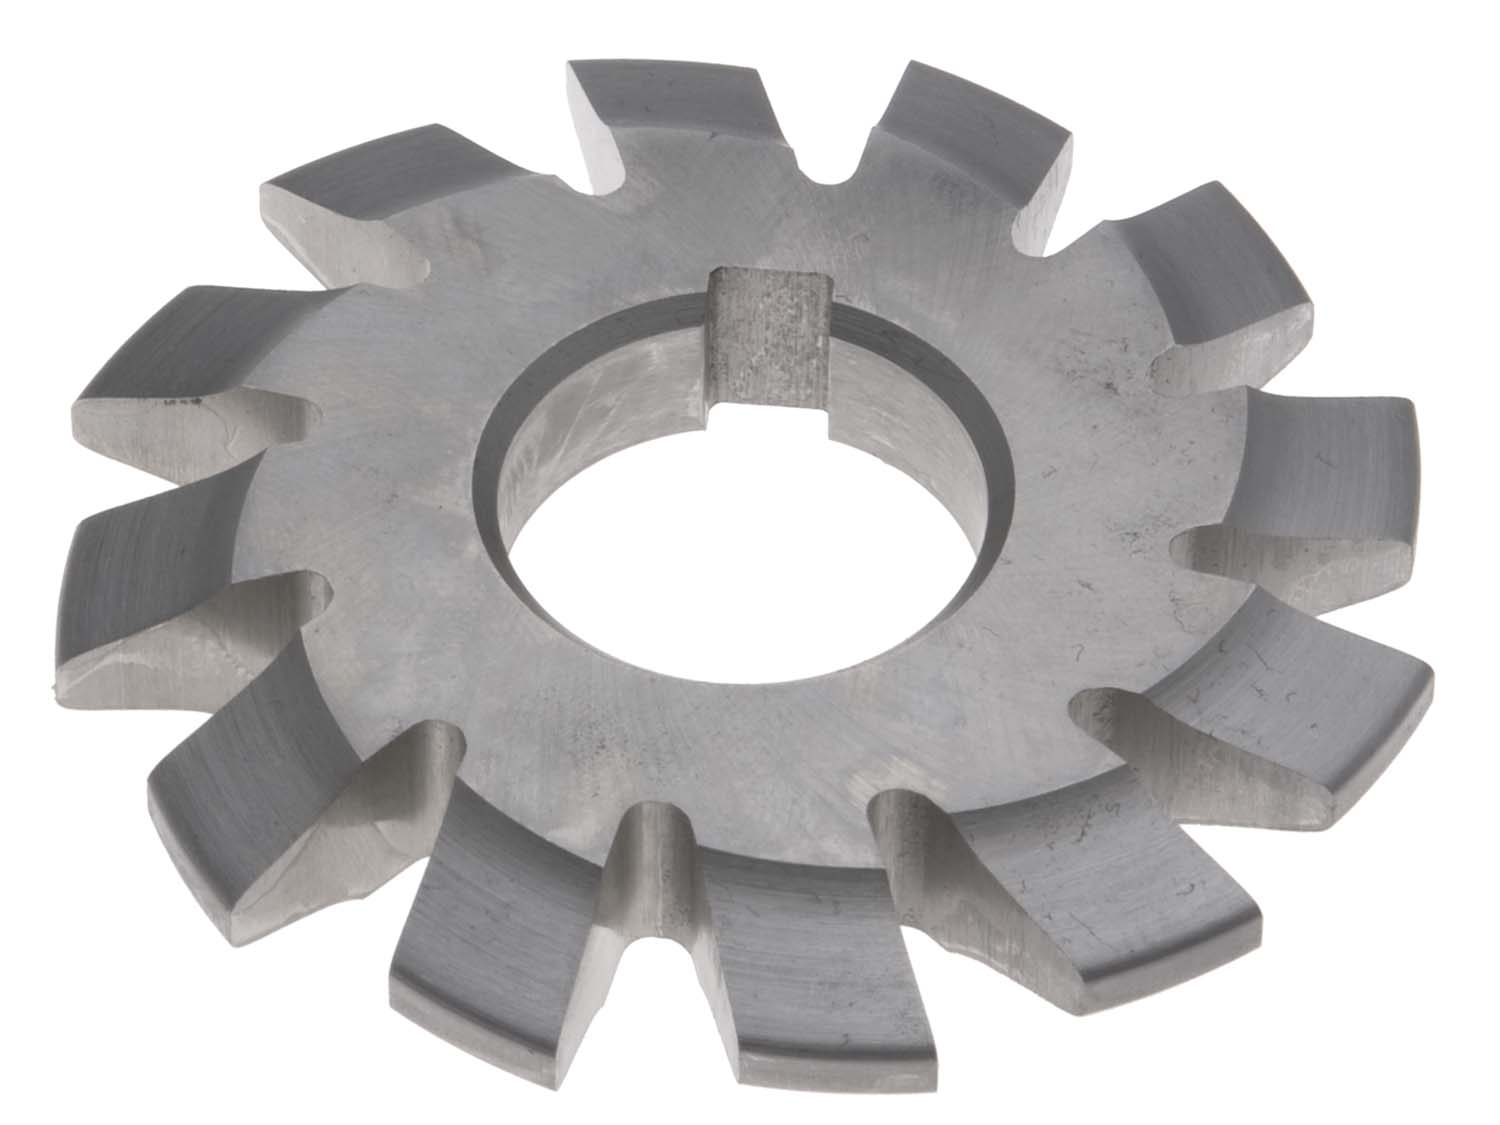 18 Diametral Pitch # 5  Involute Gear Cutter - 1 Inch ID - 14-1/2 Degree Pressure Angle